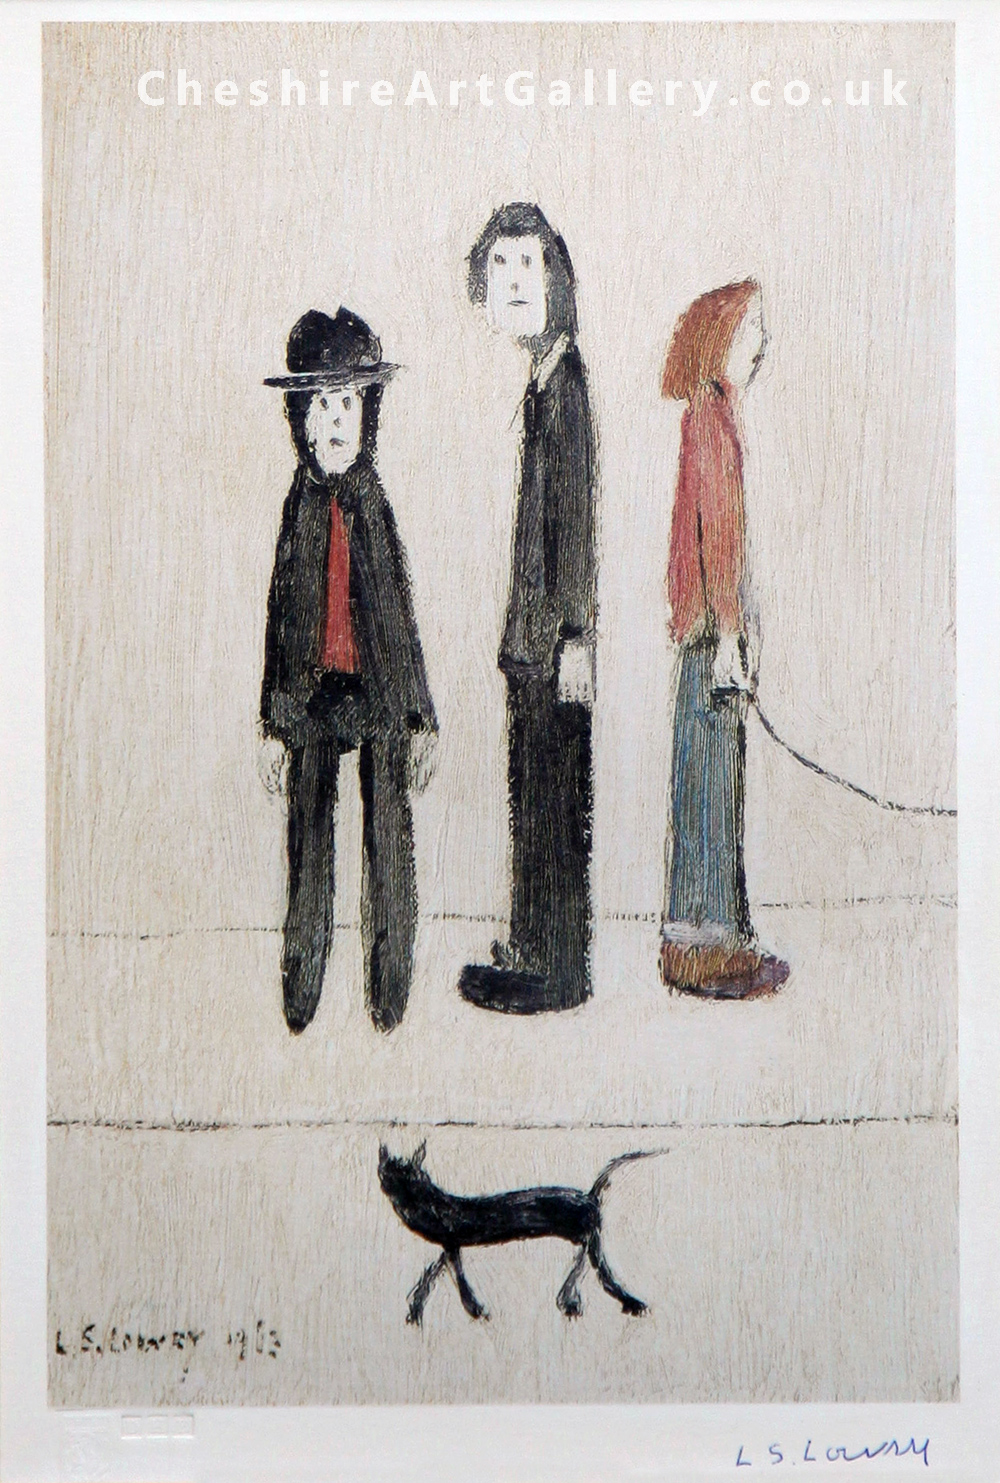 lowry-three-men-and-a-cat